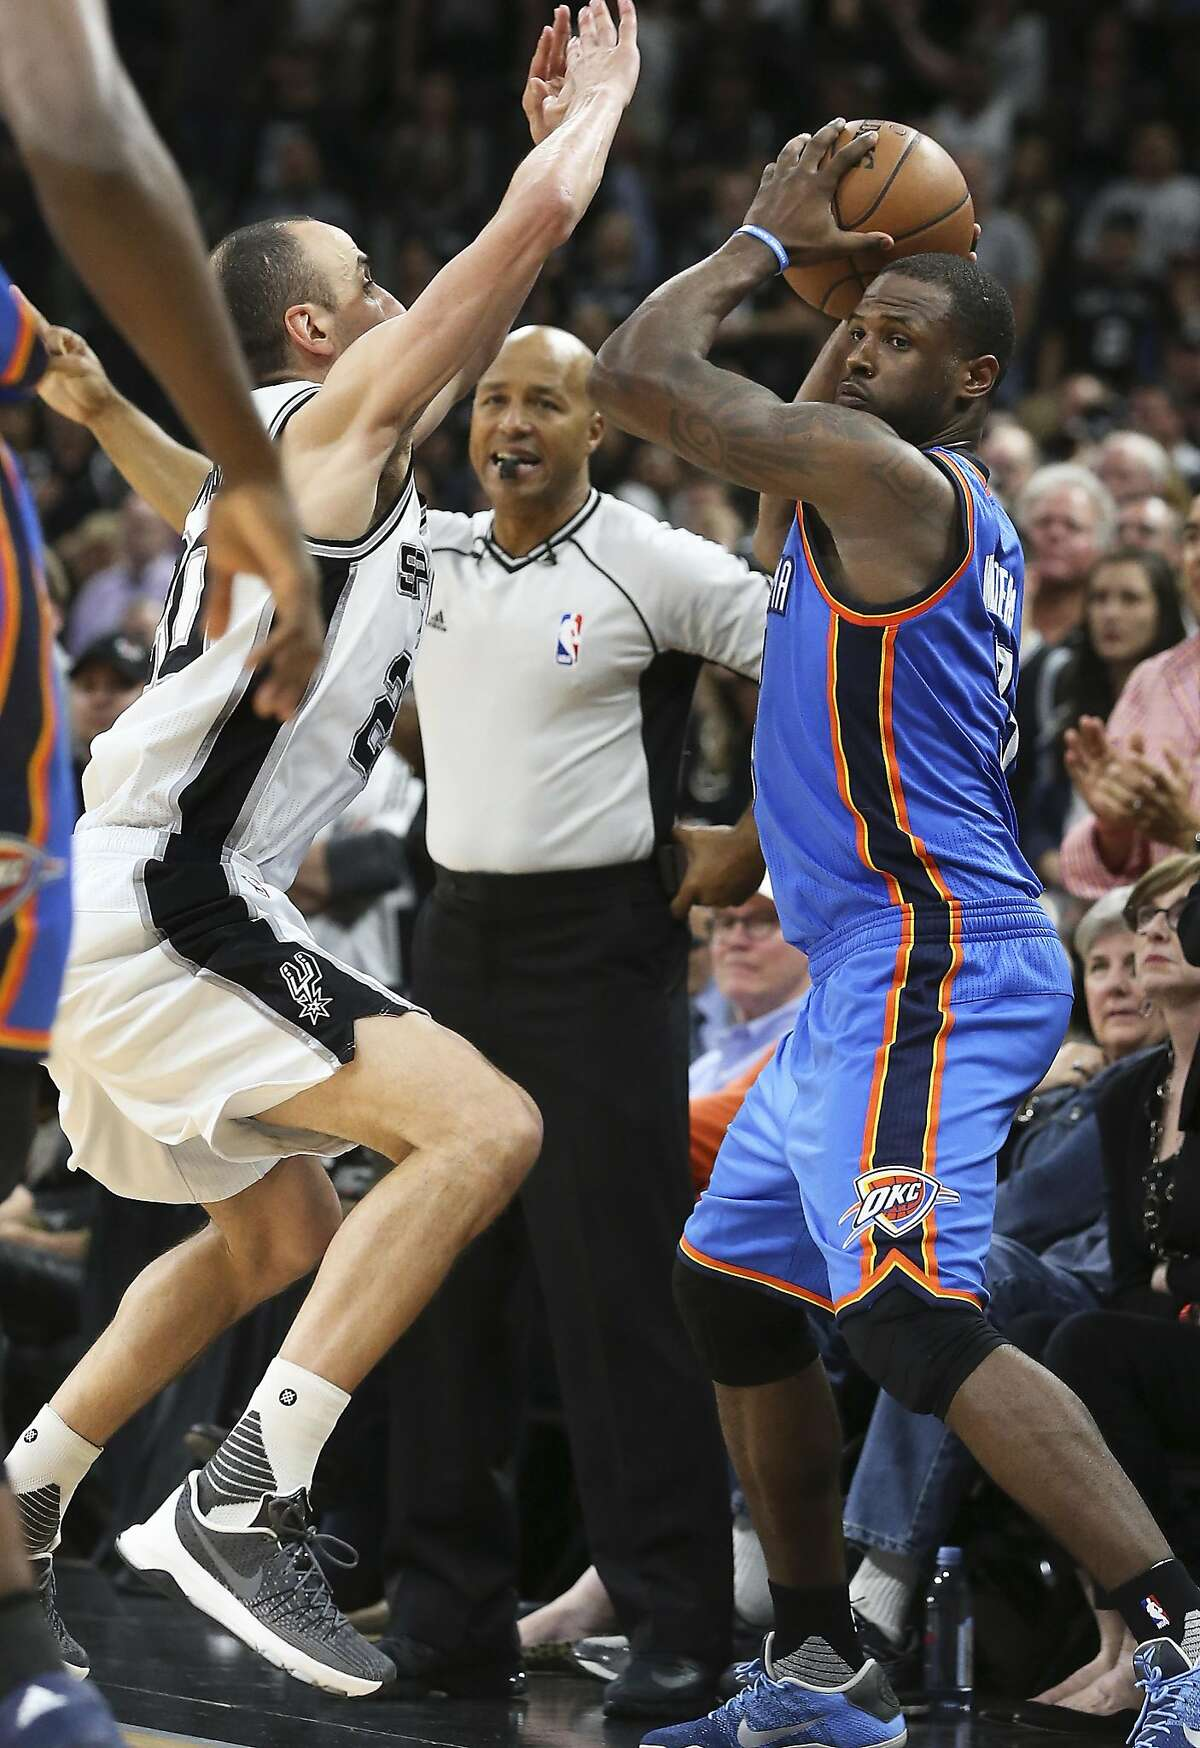 The Thunder's Dion Waiters (right) elbowing the Spurs' Manu Ginobili to create more room to pass the ball in bounds Monday night was something NBA officials called unprecedented, but will be enforced in the future. Hence, the Dion Waiters Rule. Click through the gallery to see other rules in sports named after or inspired by players' actions.